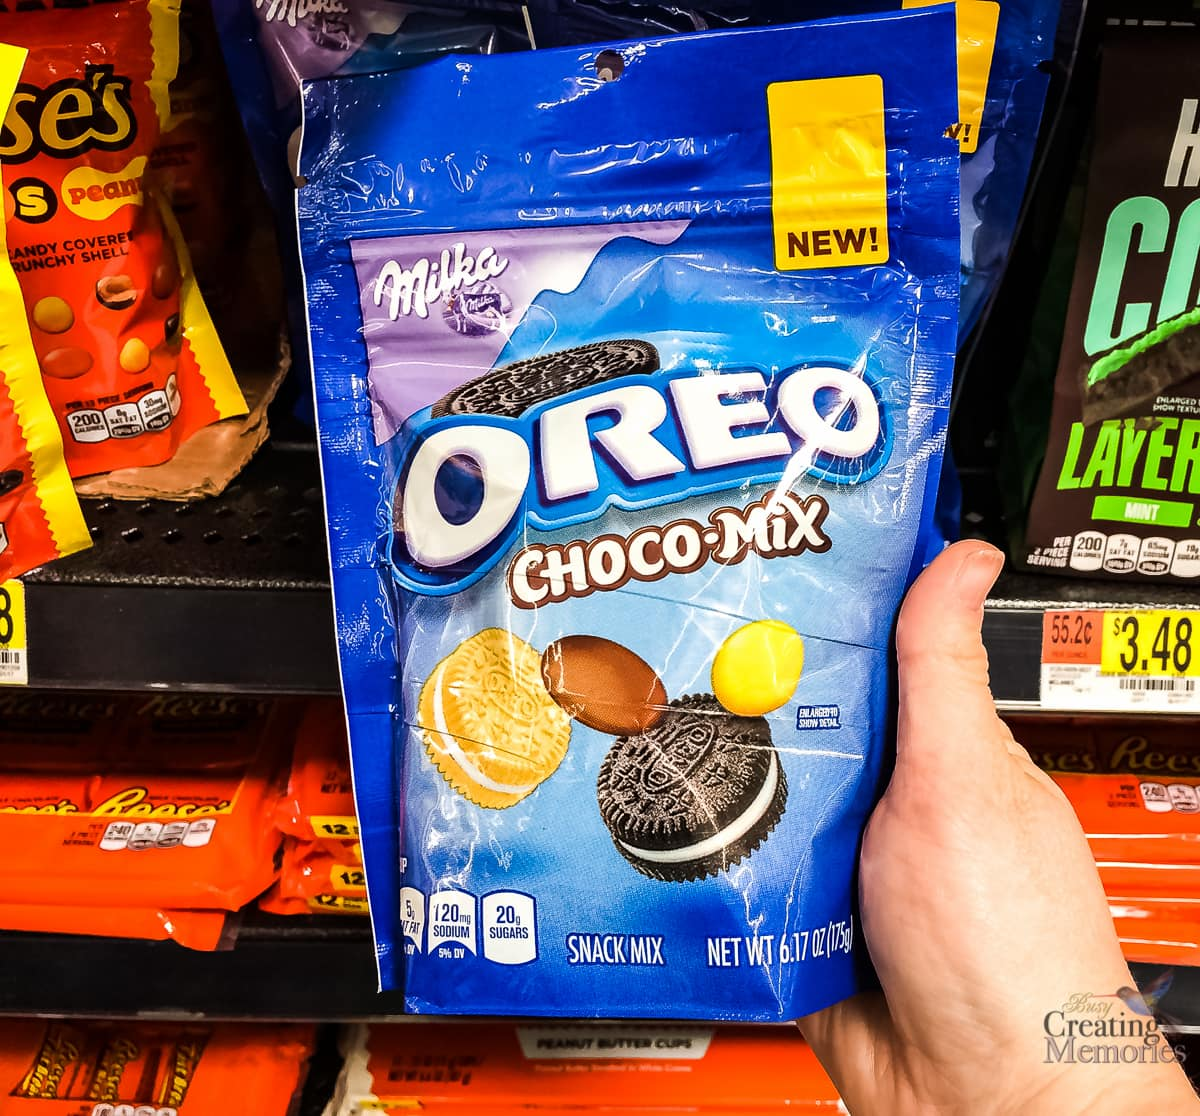 Treat Yourself with the new MILKA OREO CHOCOLATE CANDY + $25 WALMART GIFTCARD Giveaway!